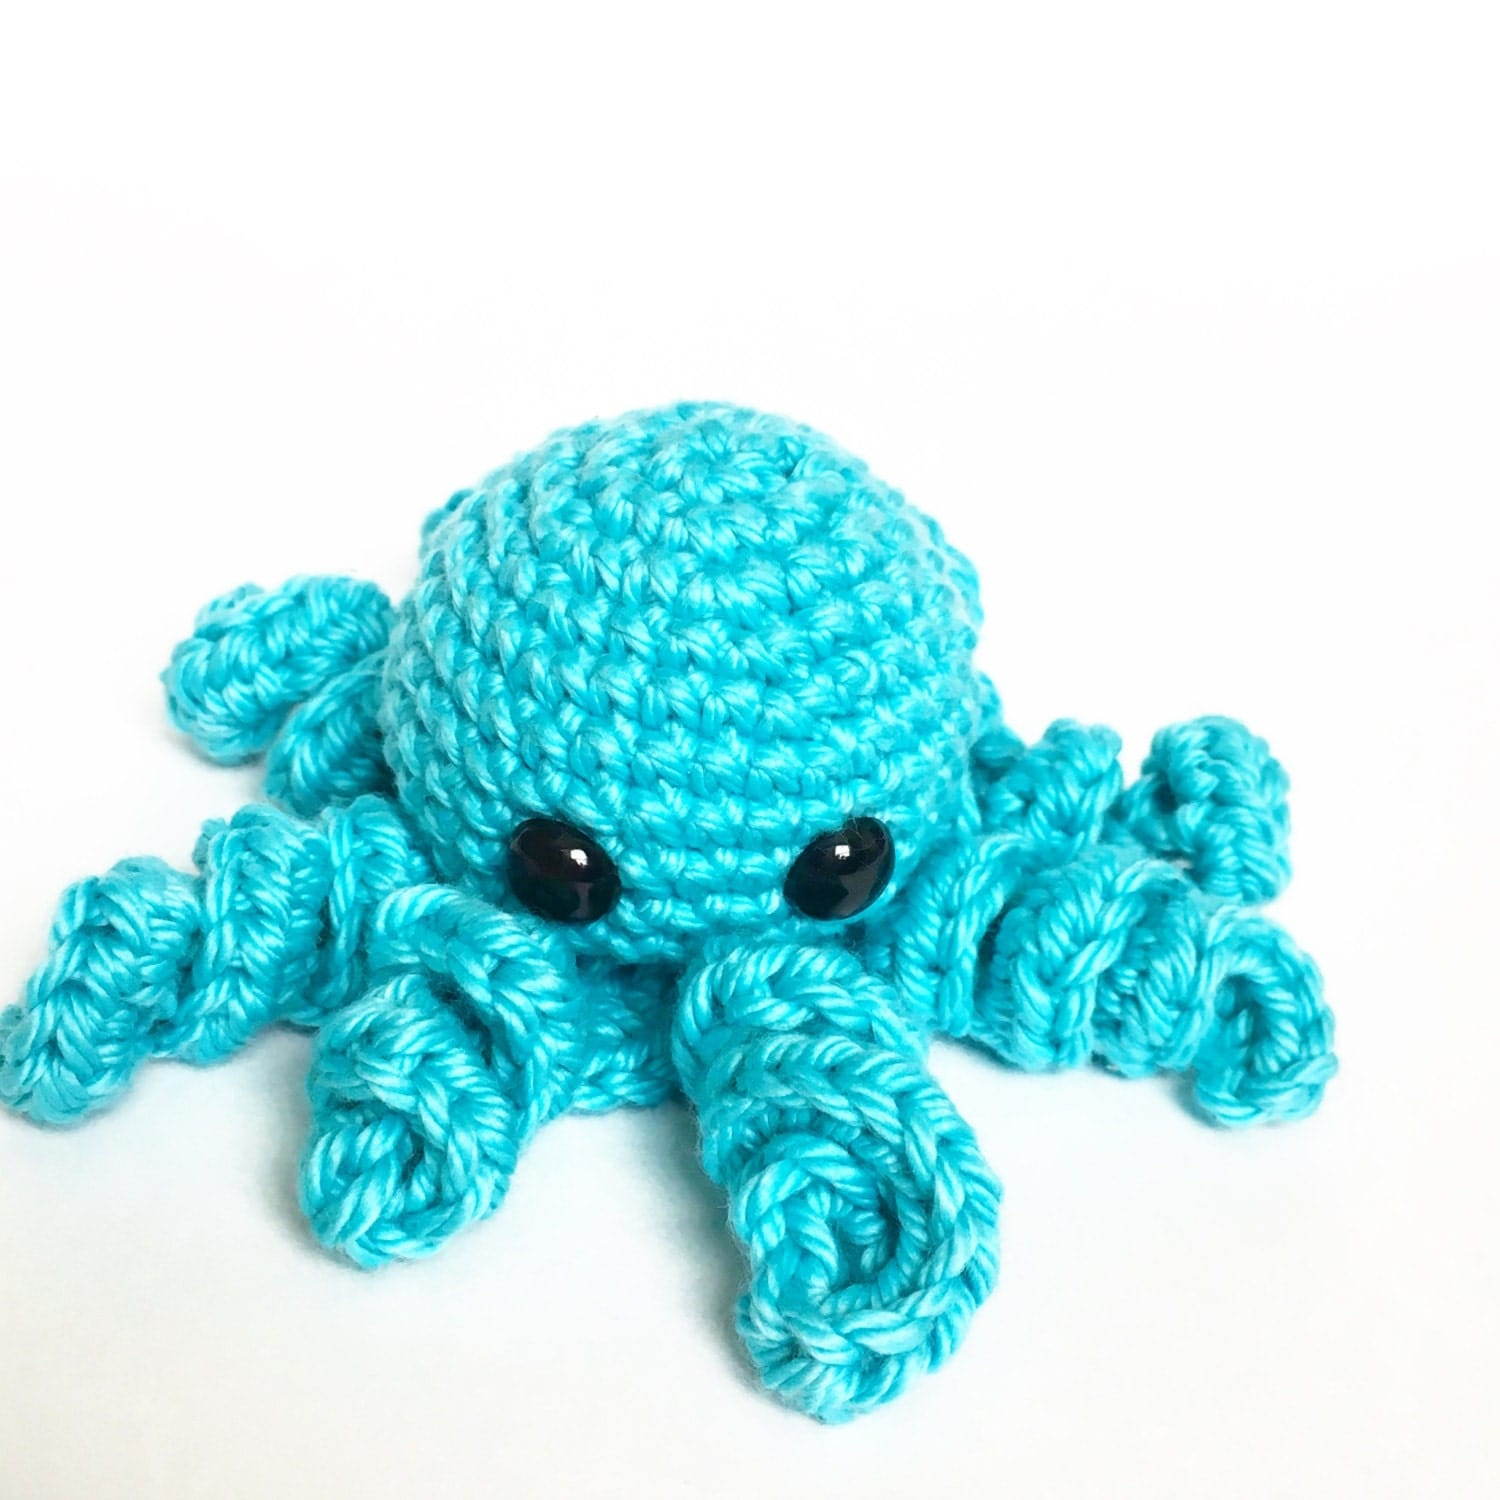 Mini Amigurumi Octopus : Mini Amigurumi Crochet Octopus in Soft by CharissaPrayDesigns